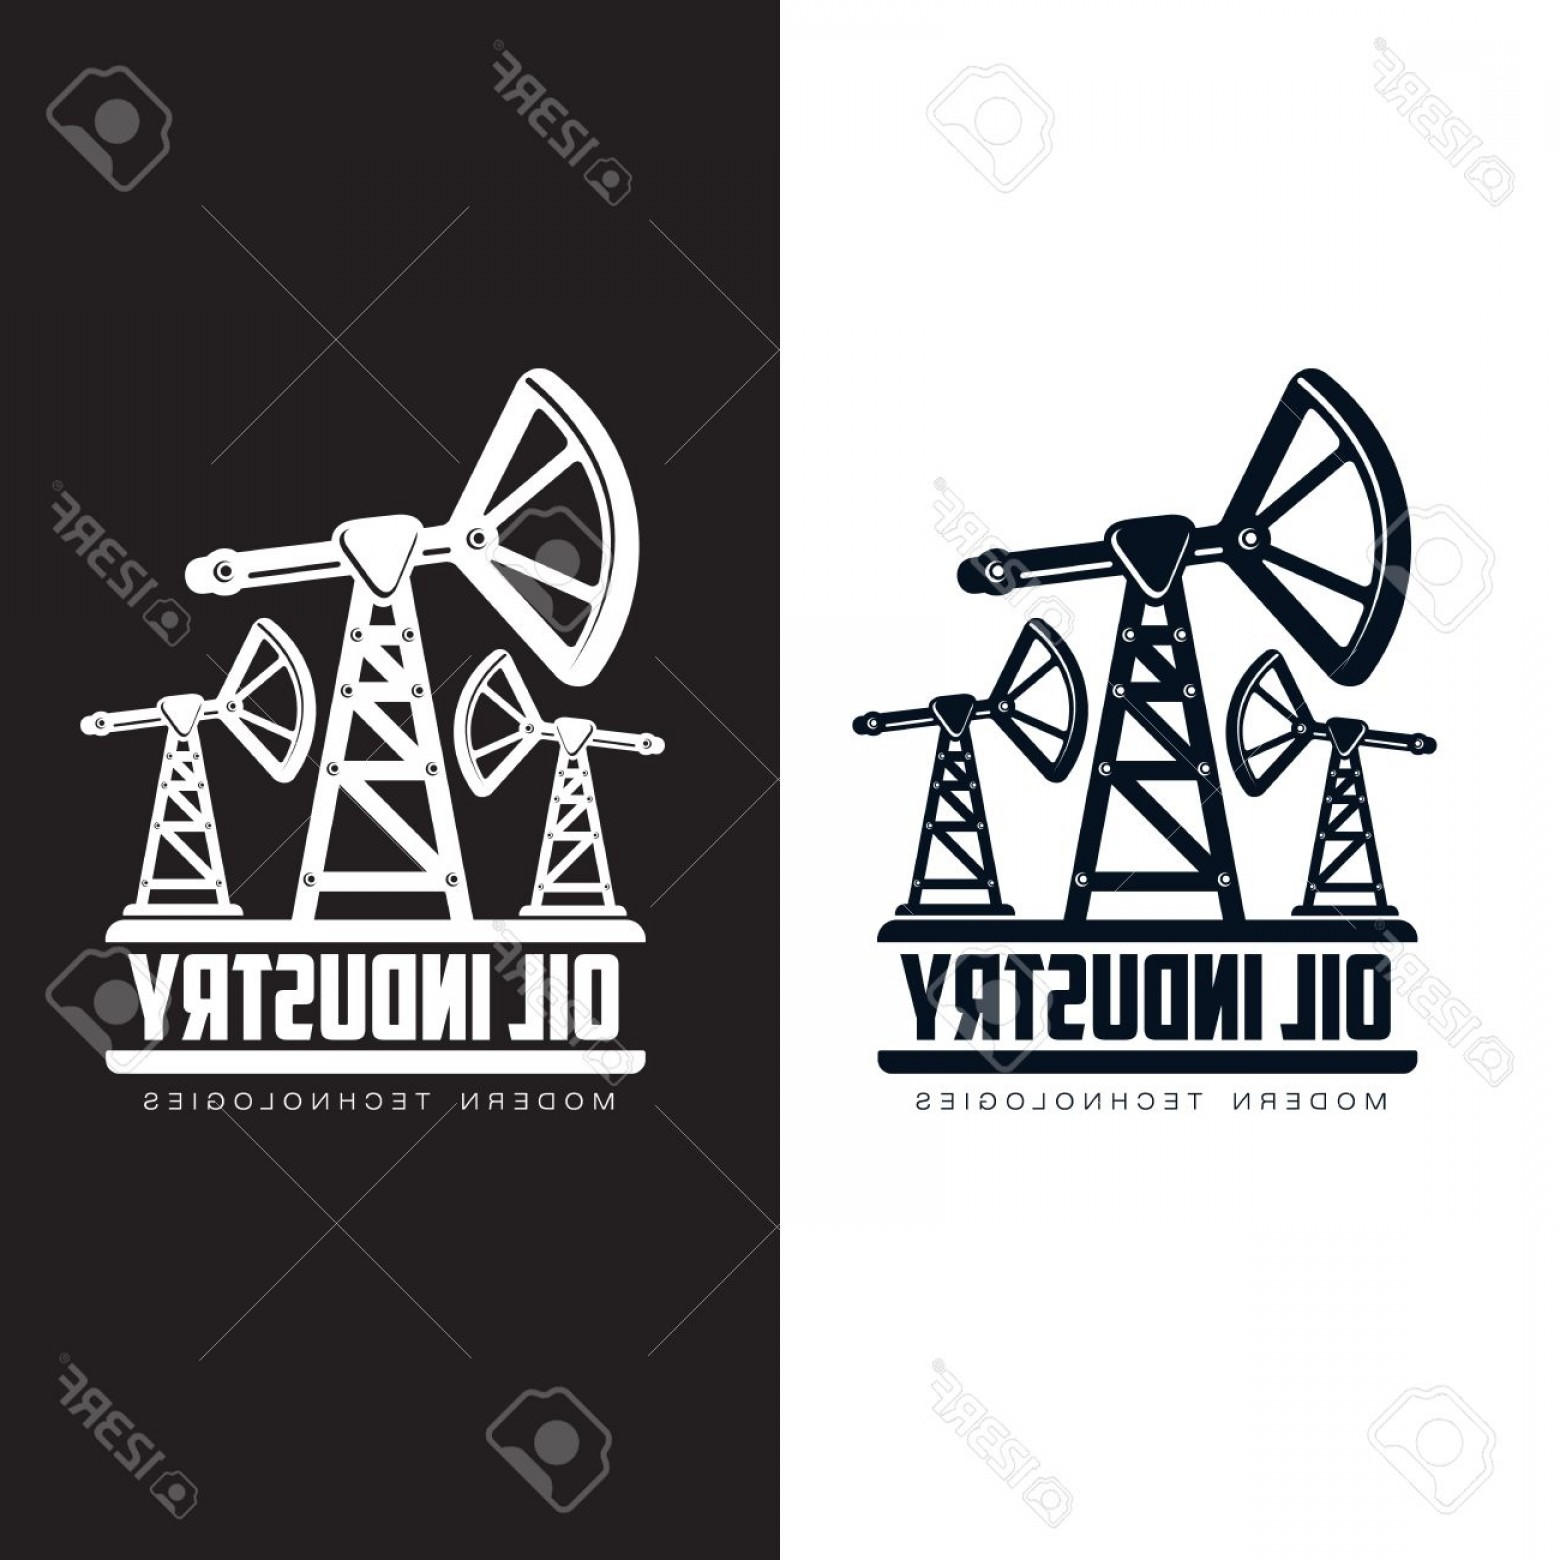 Construction Logos Vector Black And White: Photostock Vector Set Of Logos With Oil Vectors Flat Illustration Isolated On White Background The Oil Company The Ind